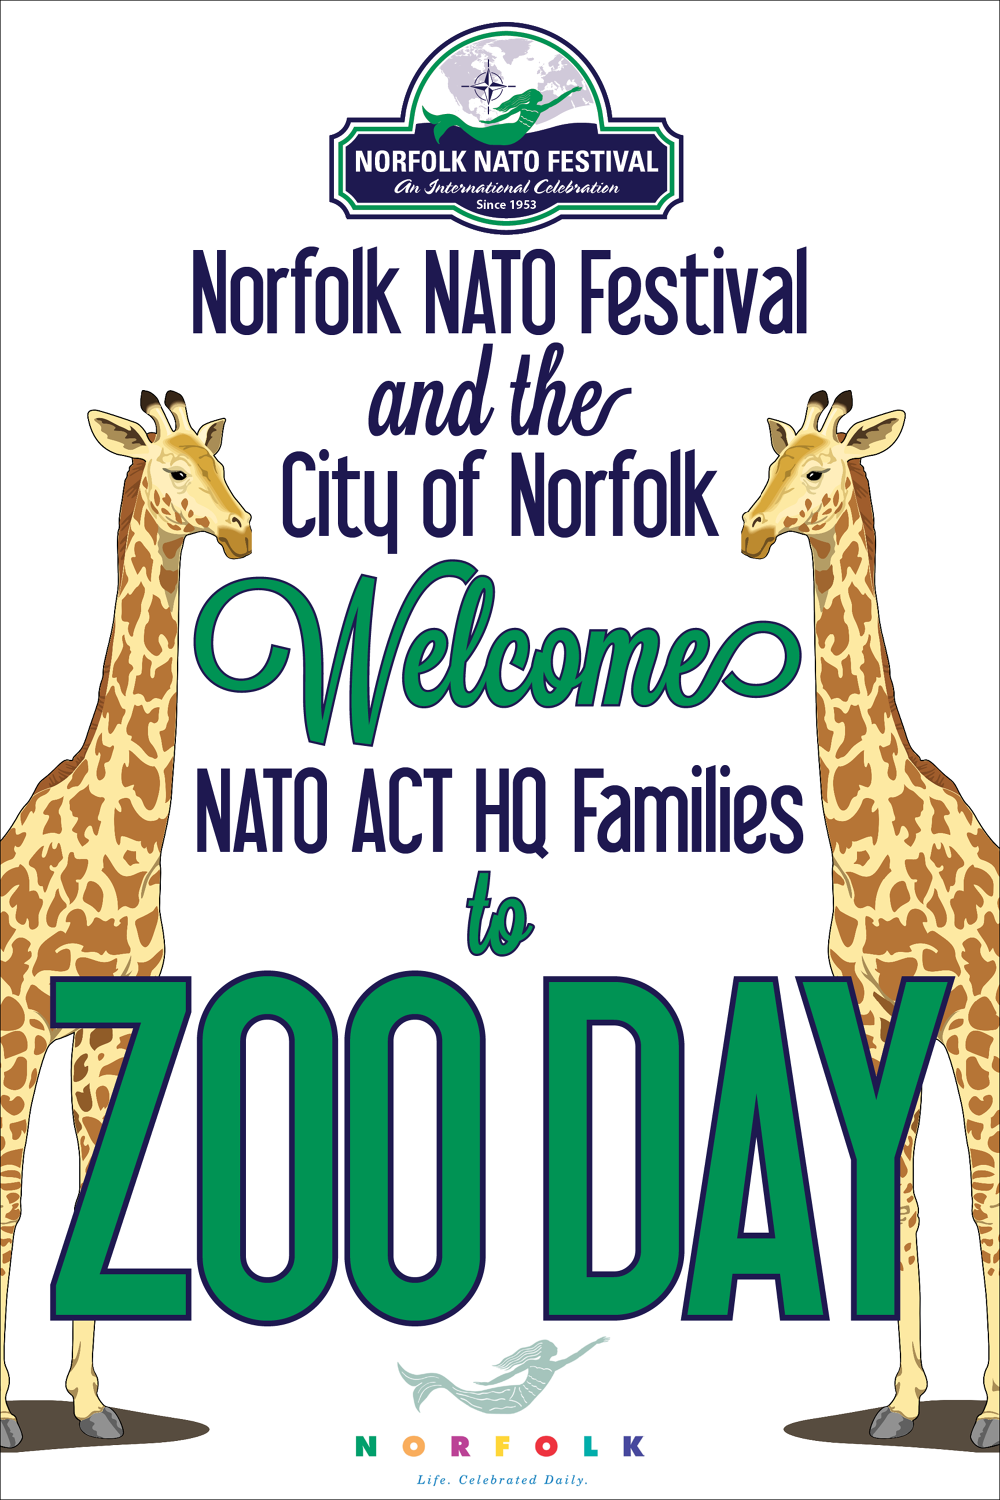 Zoo poster design - Poster Was Used To Welcome Families As They Entered The Norfolk Zoo On The Nato Festival S Zoo Day